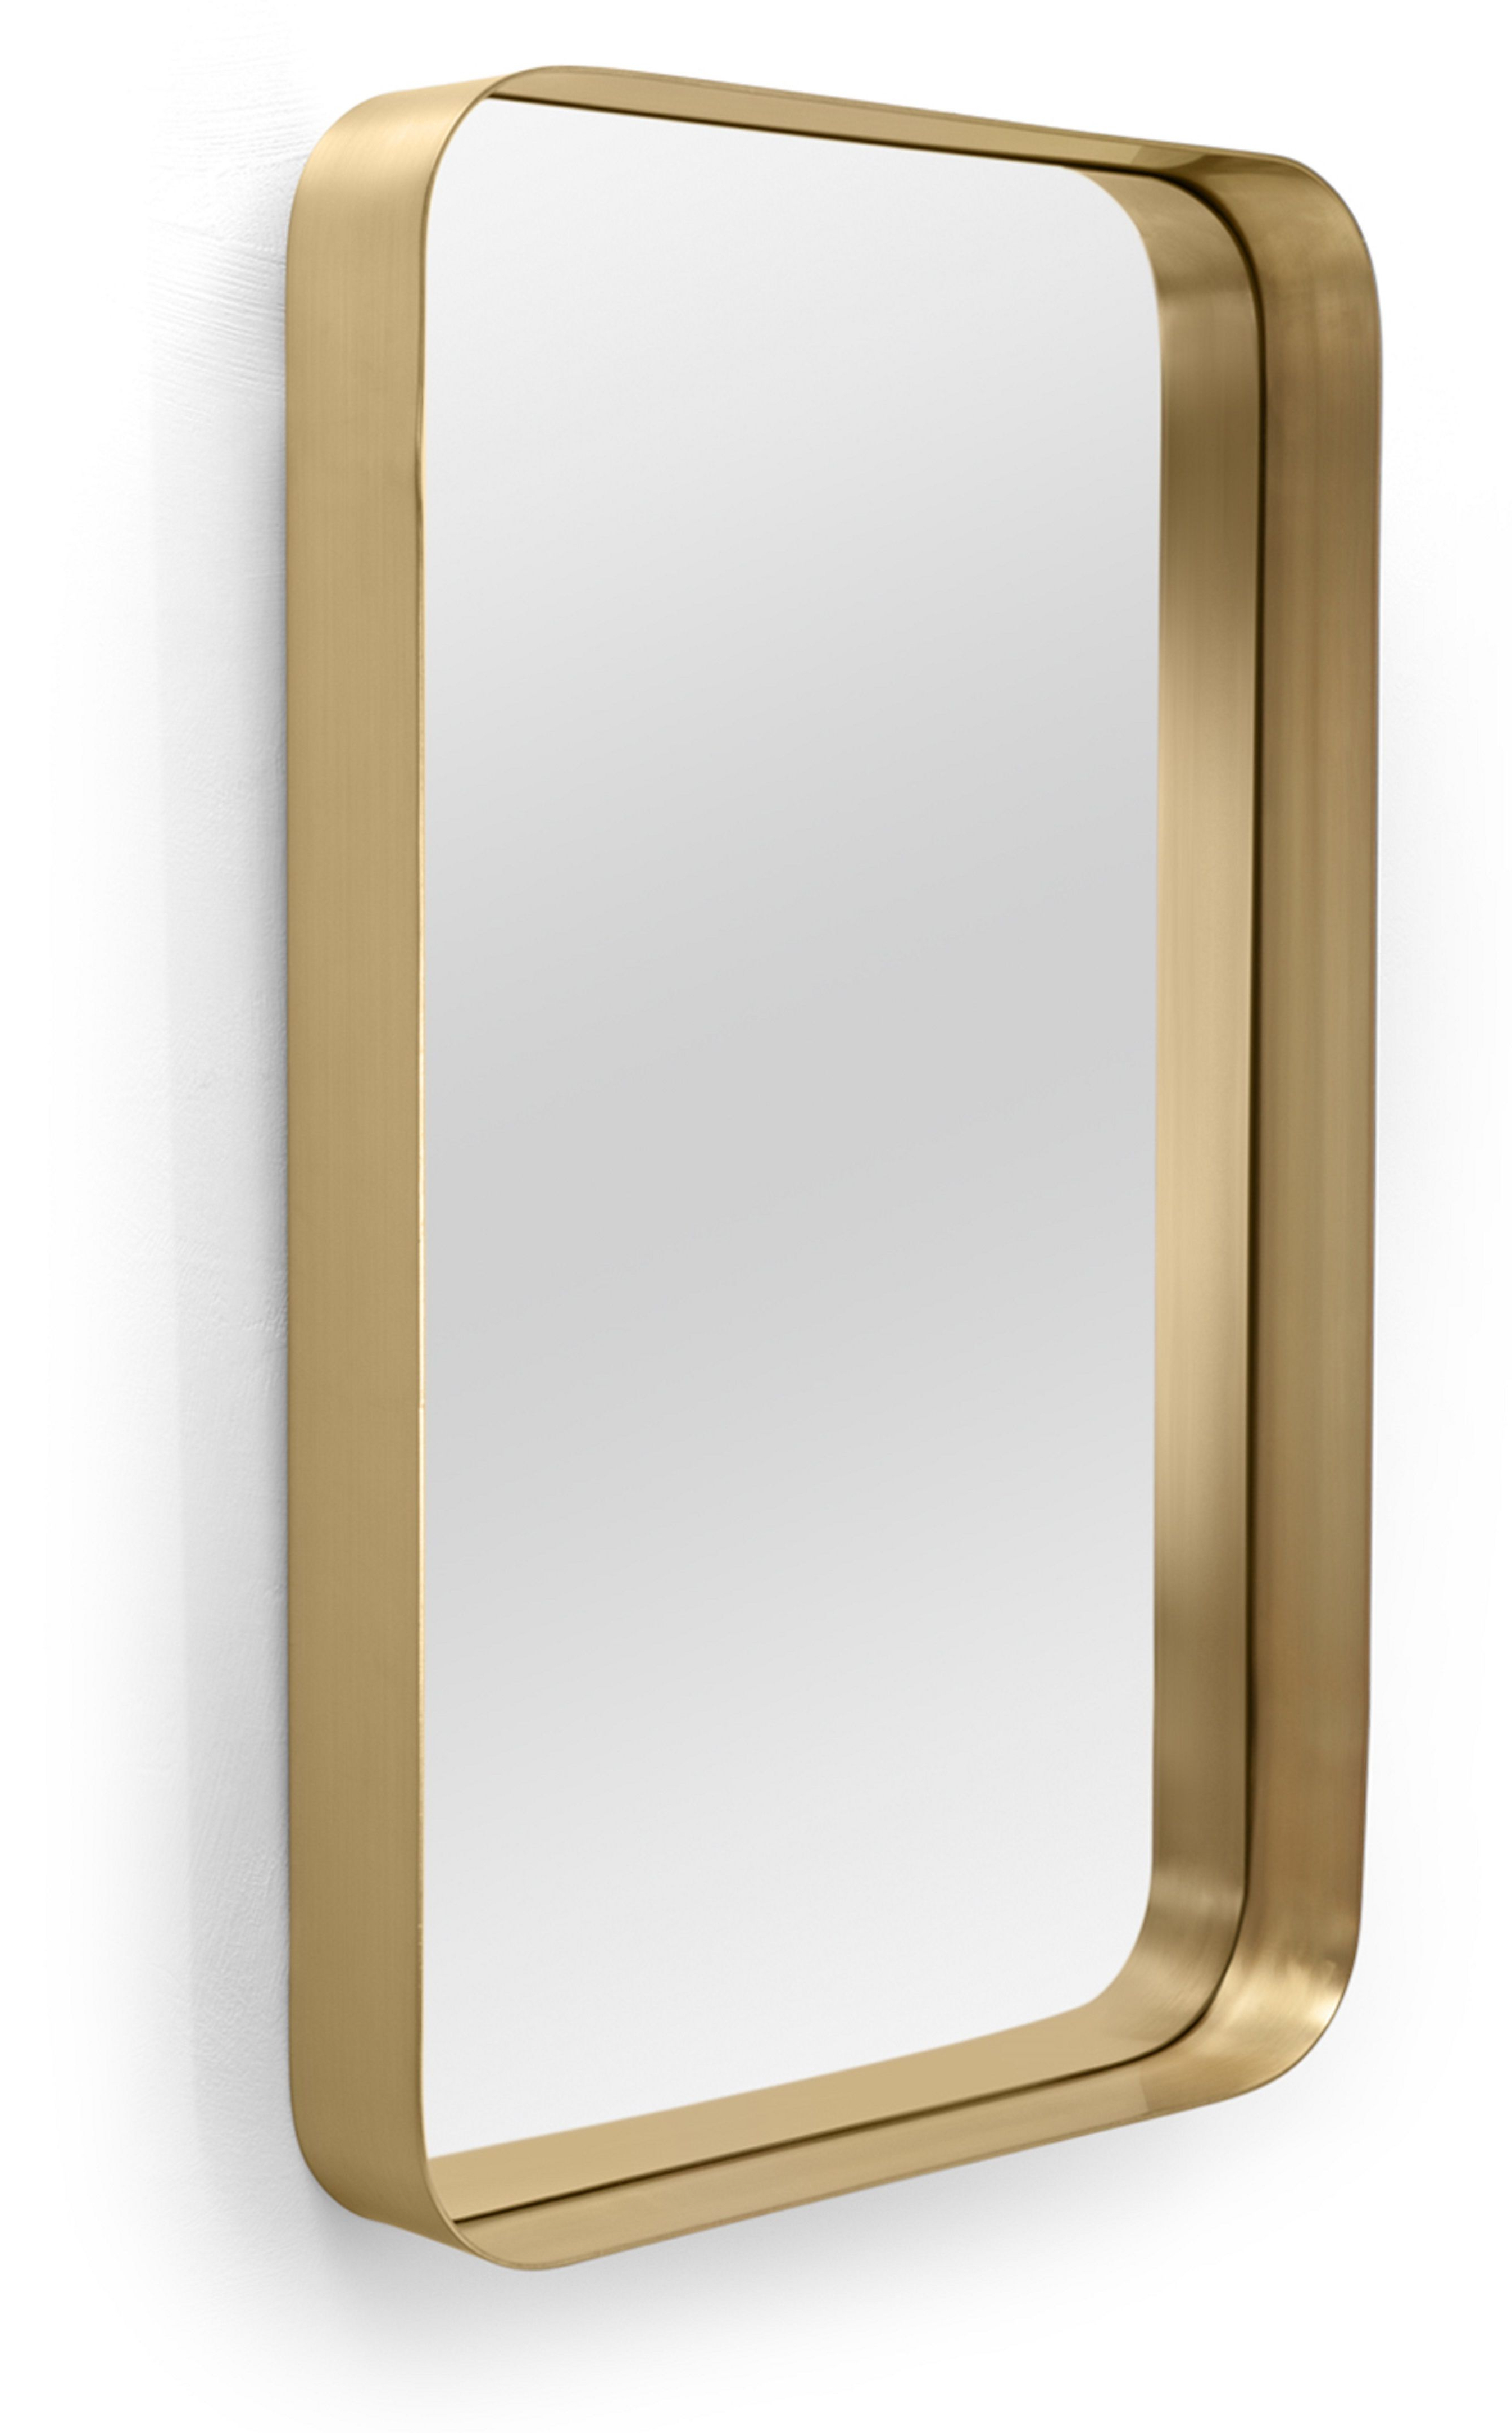 Lugo Rectangle Accent Mirrors Inside Widely Used Alana Rectangular Mirror 50 X 80 Cm, Brushed Brass (View 7 of 20)